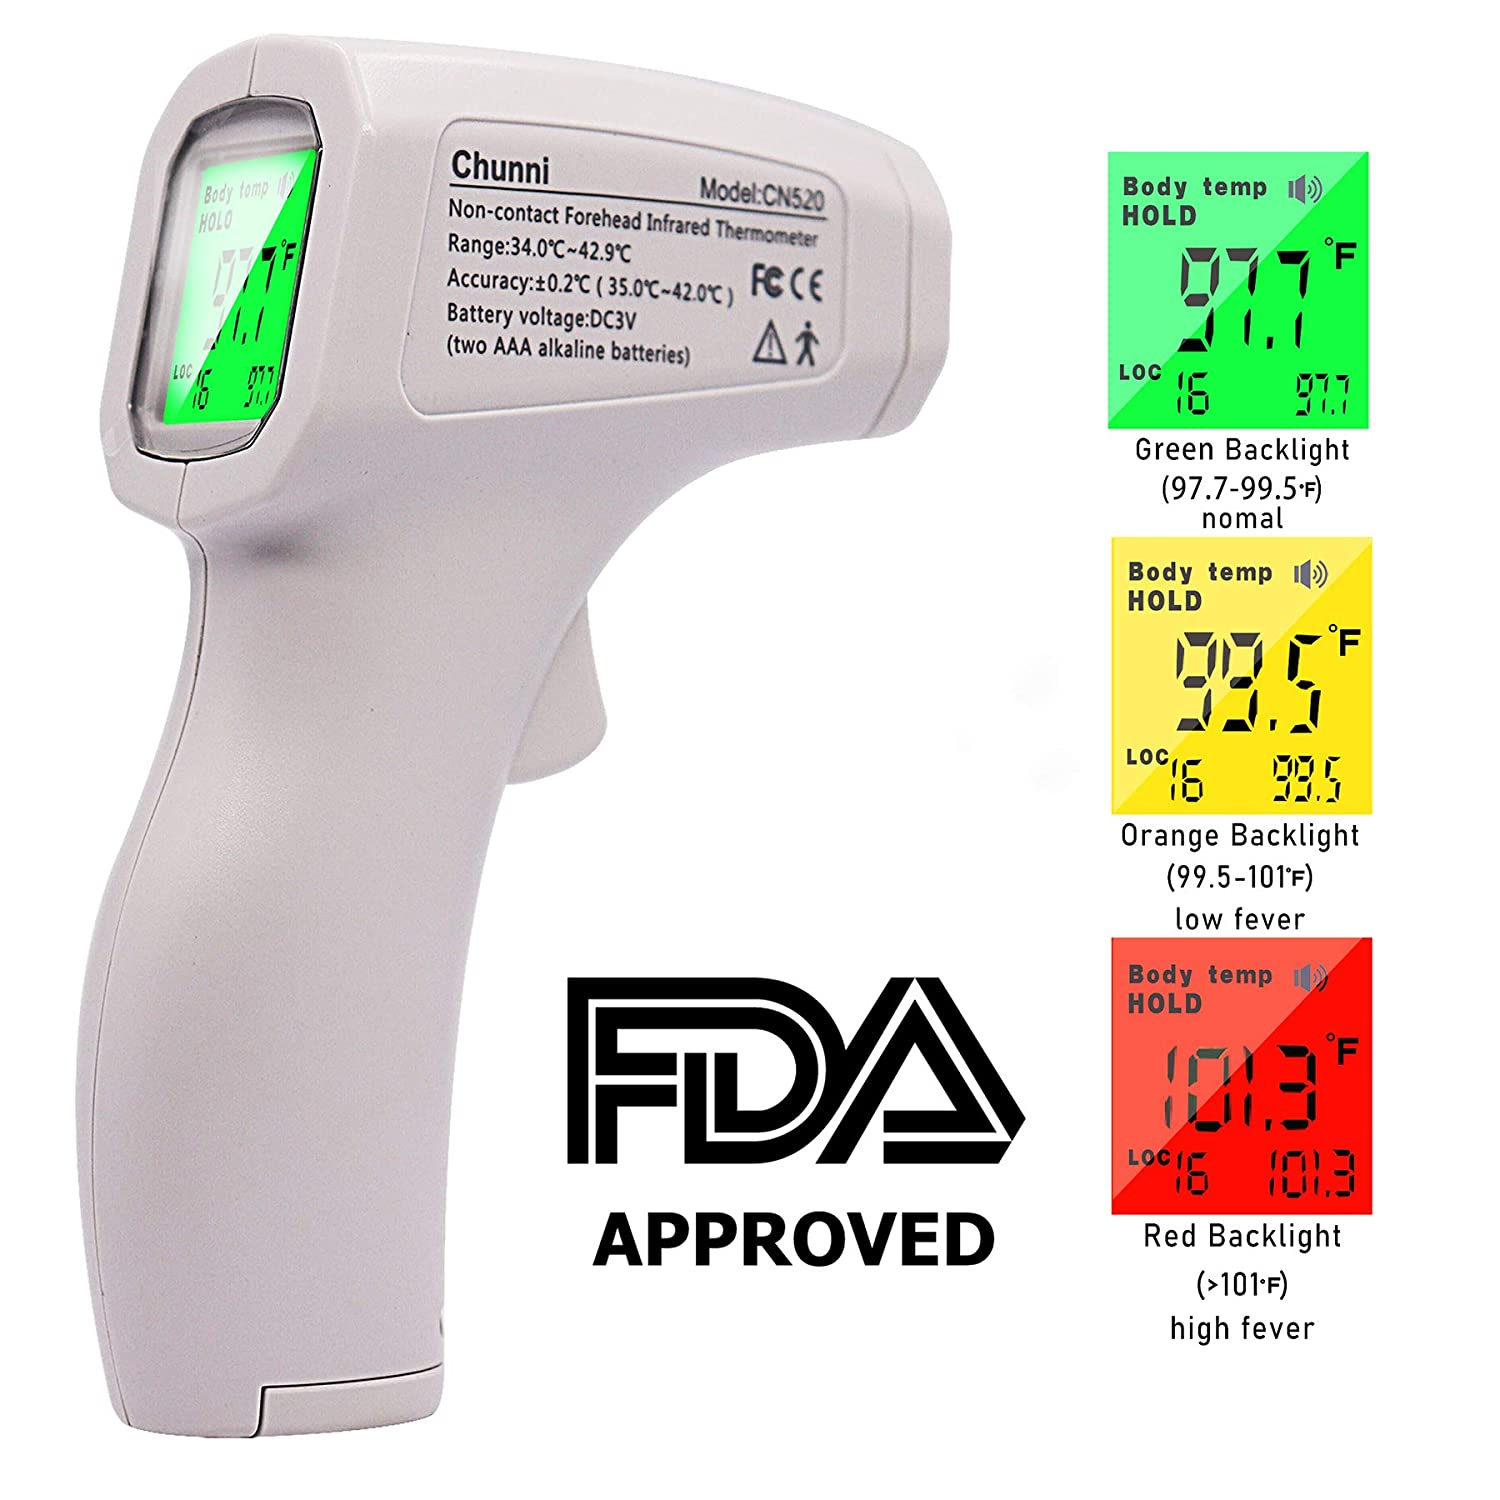 FiGoal Forehead Thermometer Non-Contact Infrared Digital Thermometer with Fever Alert Function for Baby Adults and Surface of Object Digital Medical Infrared Thermometer Instant Results 1 Pack